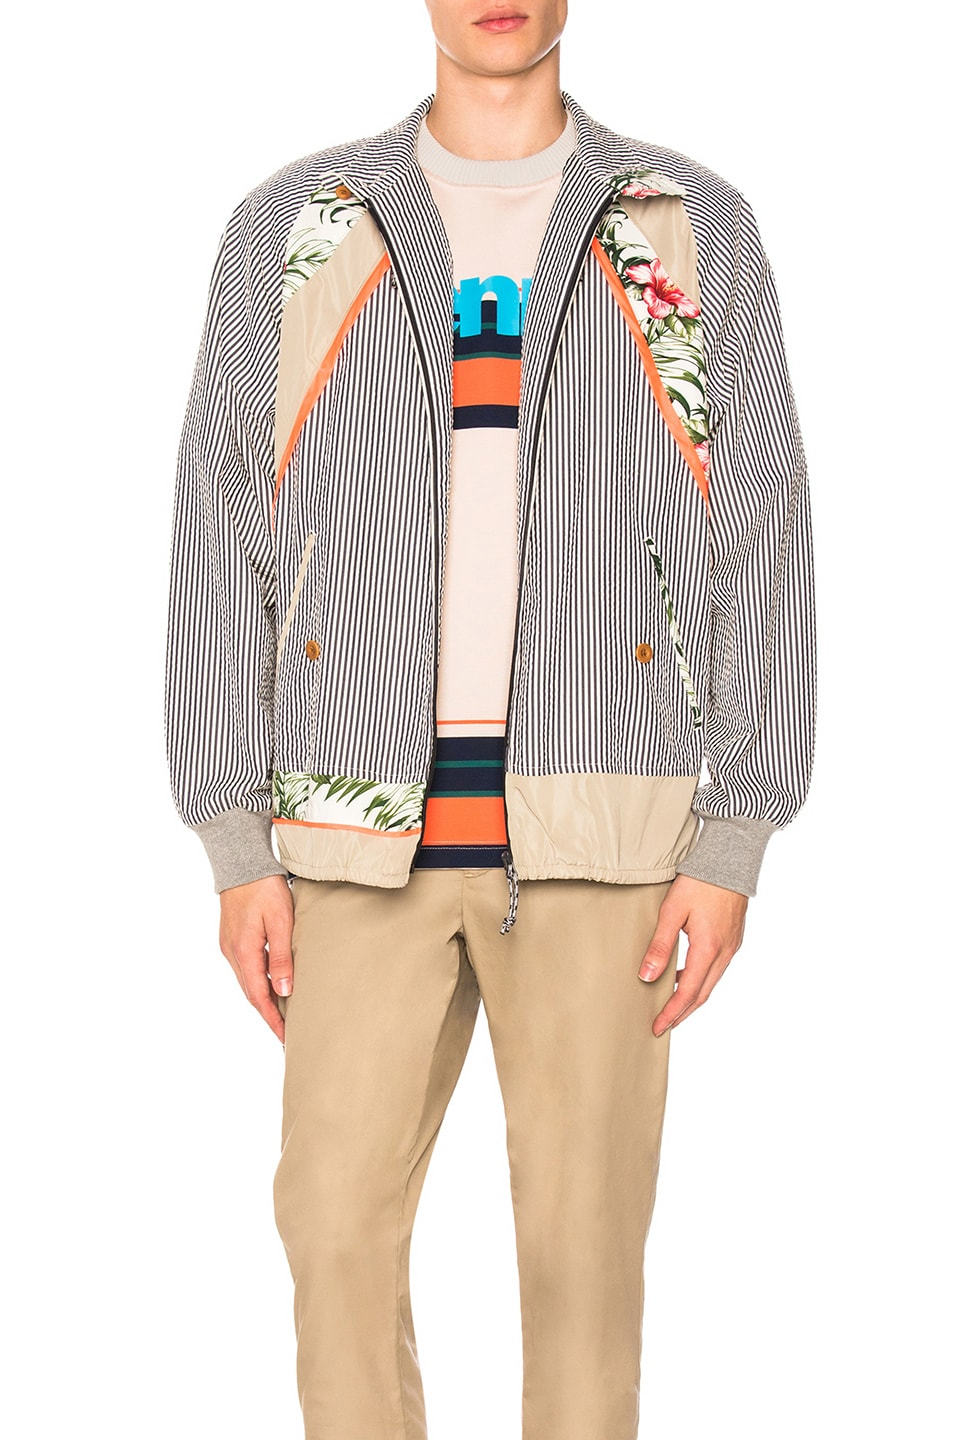 Kolor  KOLOR FULL ZIP JACKET IN BLUE,FLORAL,STRIPES,WHITE